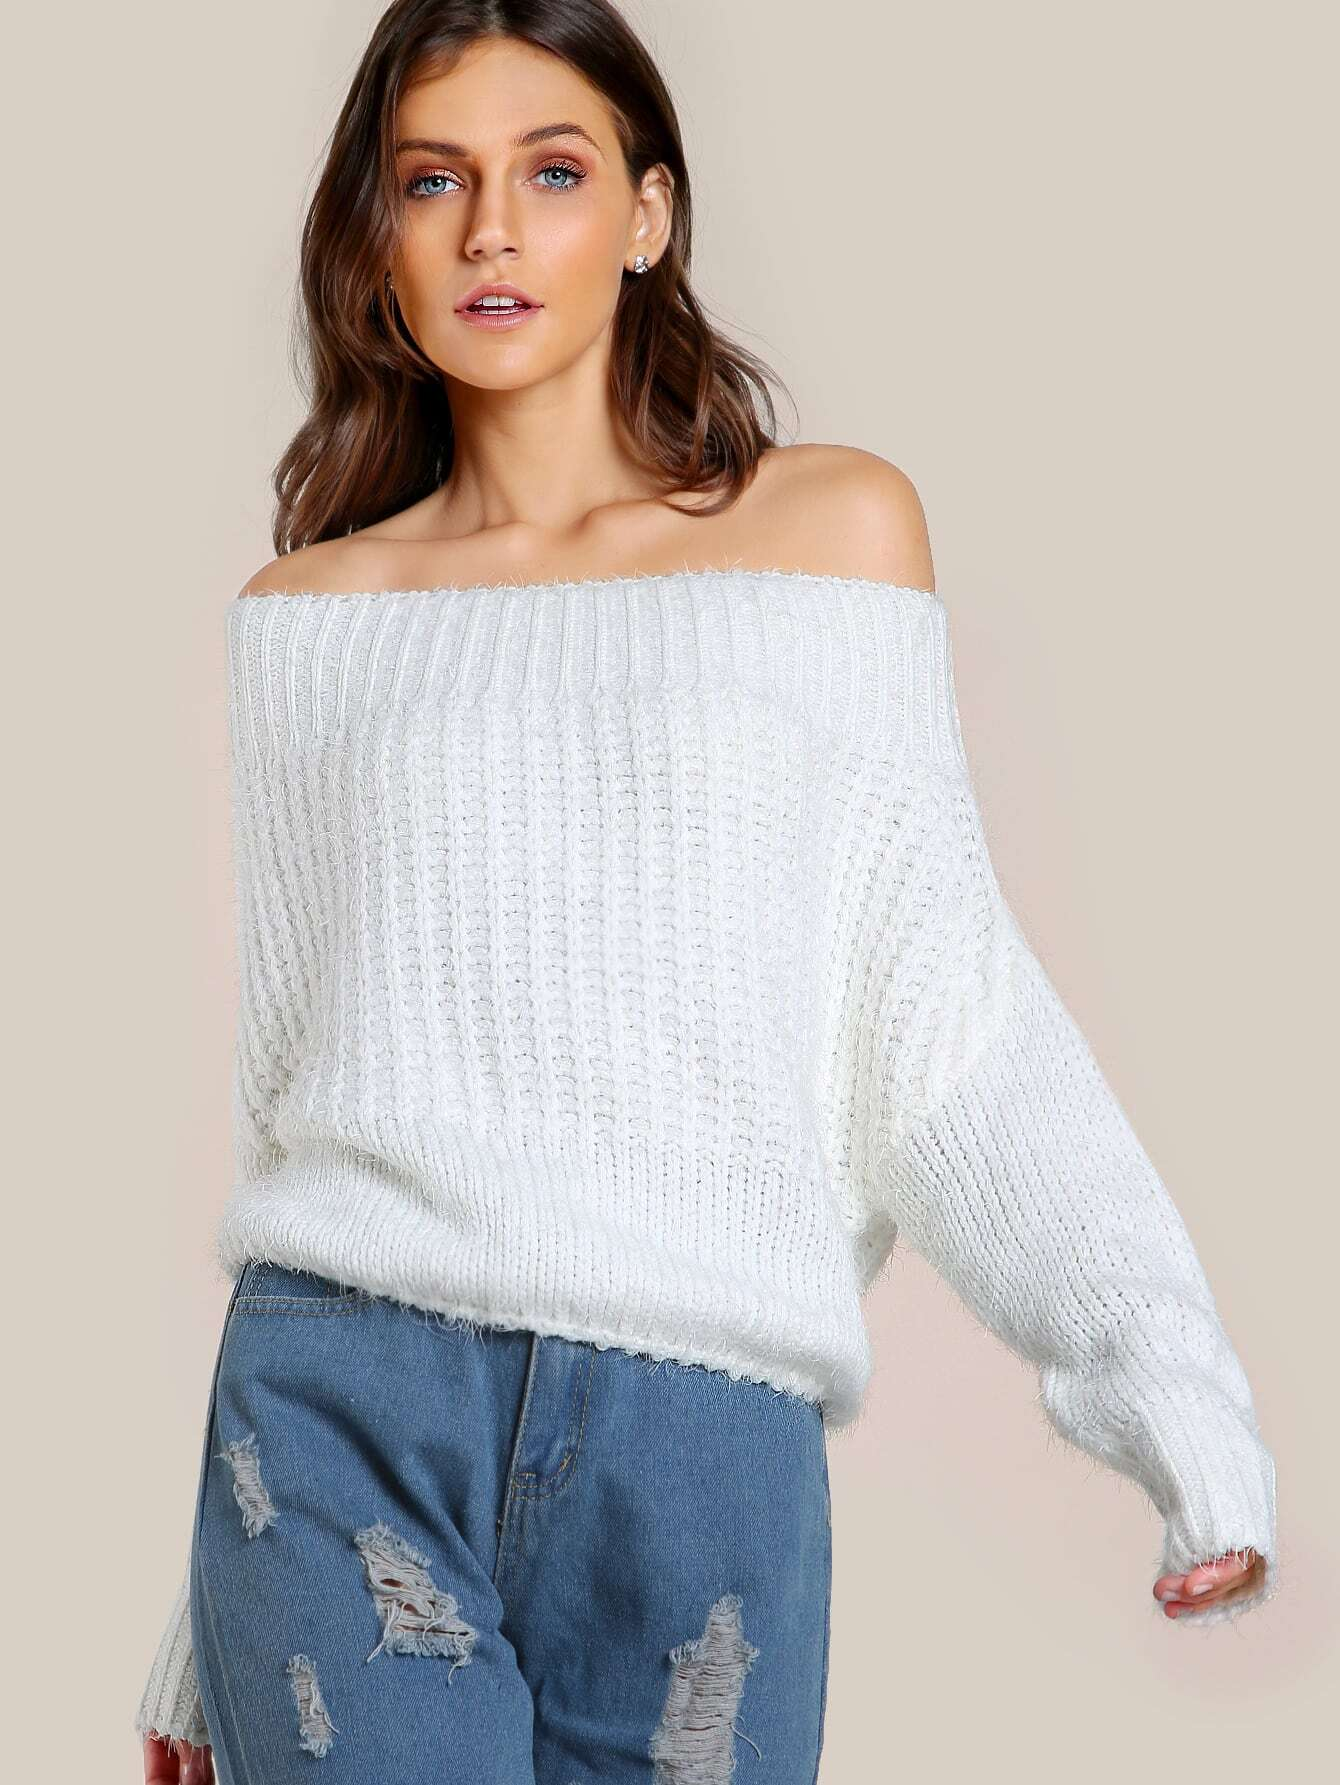 Fuzzy Off Shoulder Sweater WHITE -SheIn(Sheinside)